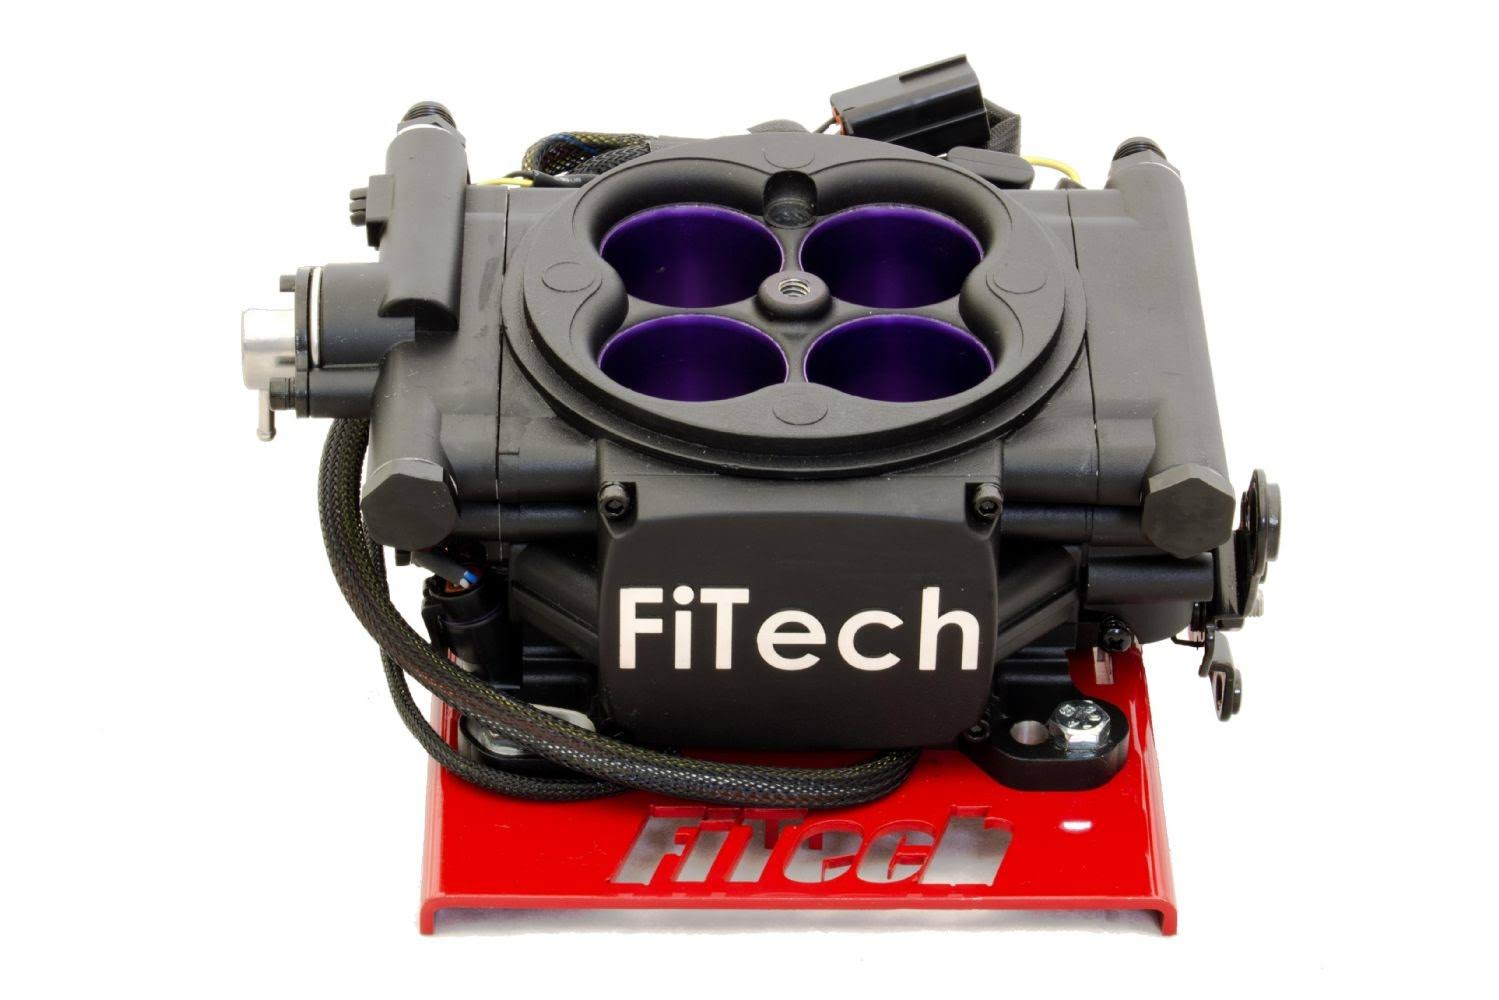 Fi-Tech 30008 Fuel Injection Kit